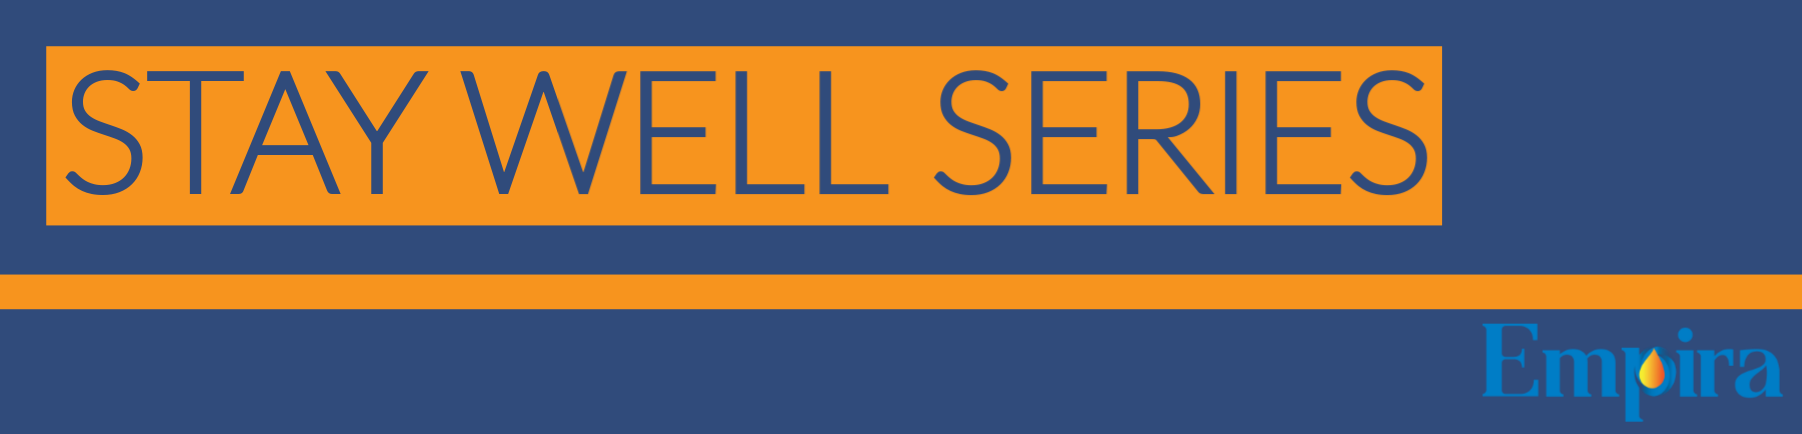 STAY-WELL-SERIES-LOGO.png